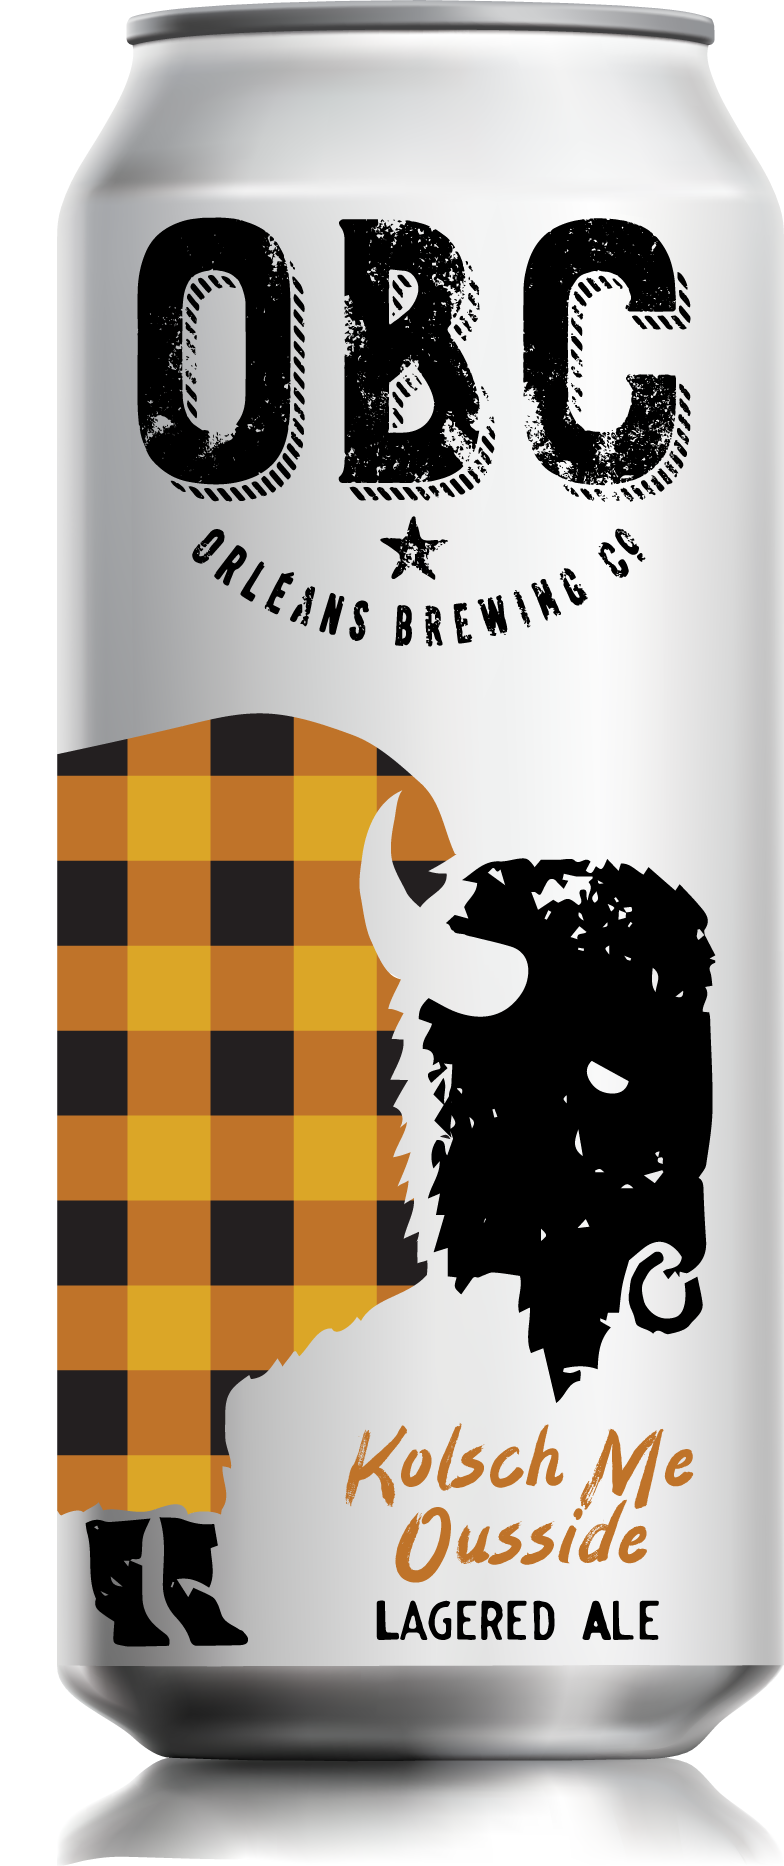 """KÖLSCH ME OUSSIDE - lagered aleFUN FACT: Bison can reach 6.5ft tall, weigh up to 1,000KG, run 60KM/H, and jump 6ft high... """"HOW-BOUDAT""""!So go ahead and """"cash"""" this cold conditionned golden ale - the perfect fresh beer that flawlessly blends malty flavours with a crisp and light finish.ABV:4.8%IBU: 24Best drank with friends and, Bratwurst, Nutty Cheeses and Cake."""